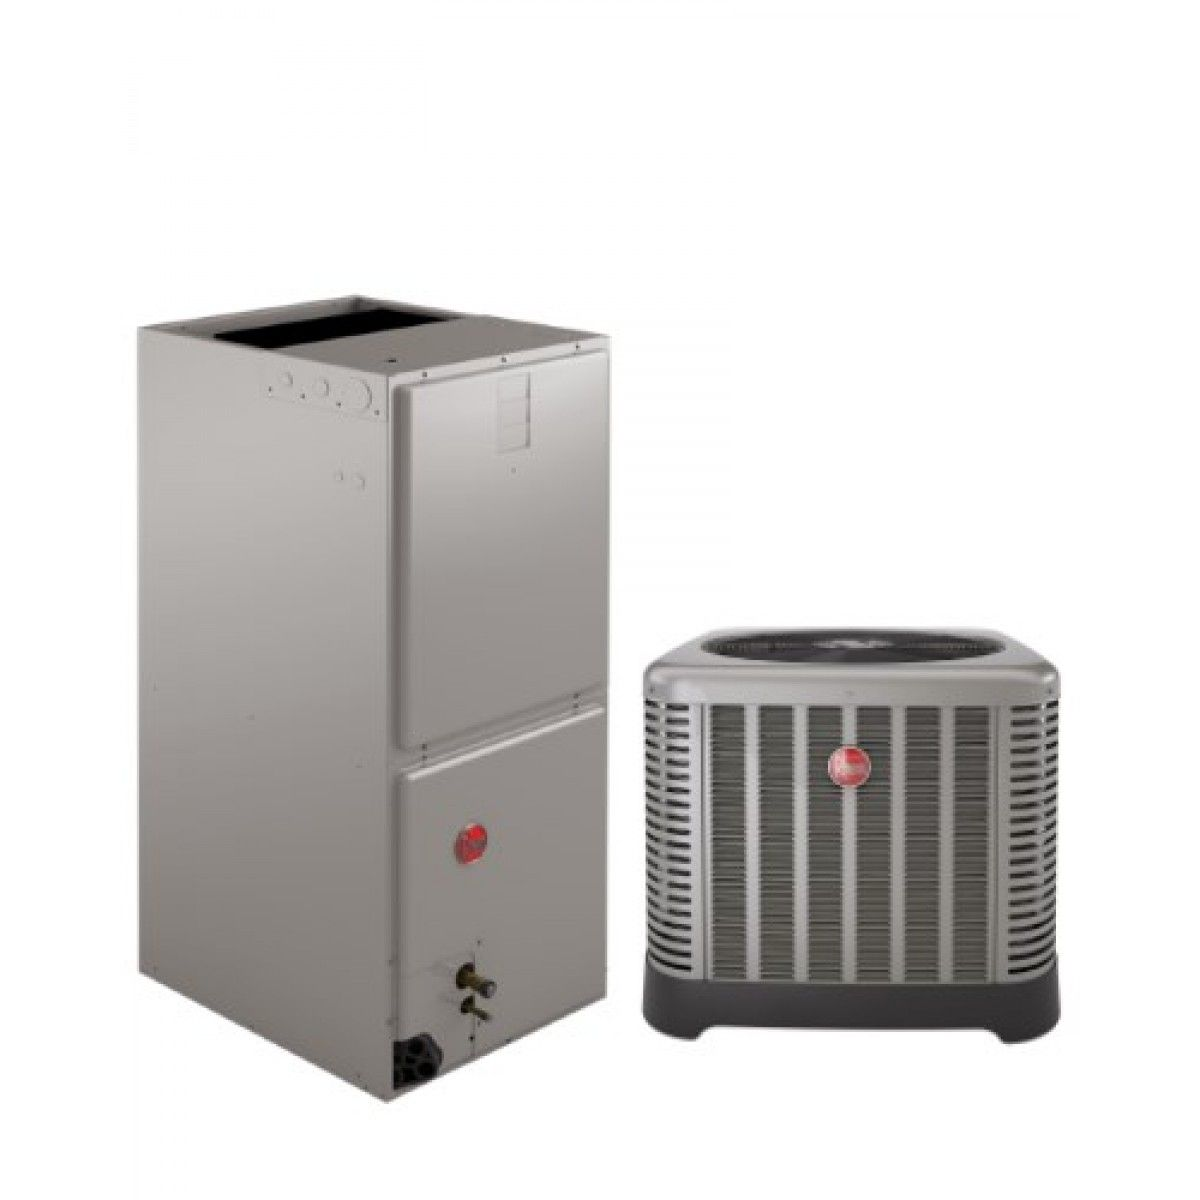 #9D2E33 Rheem 2.0 Ton 14 SEER Air Conditioning System With  Recommended 2617 Electric Heat Pump Efficiency pics with 1200x1200 px on helpvideos.info - Air Conditioners, Air Coolers and more